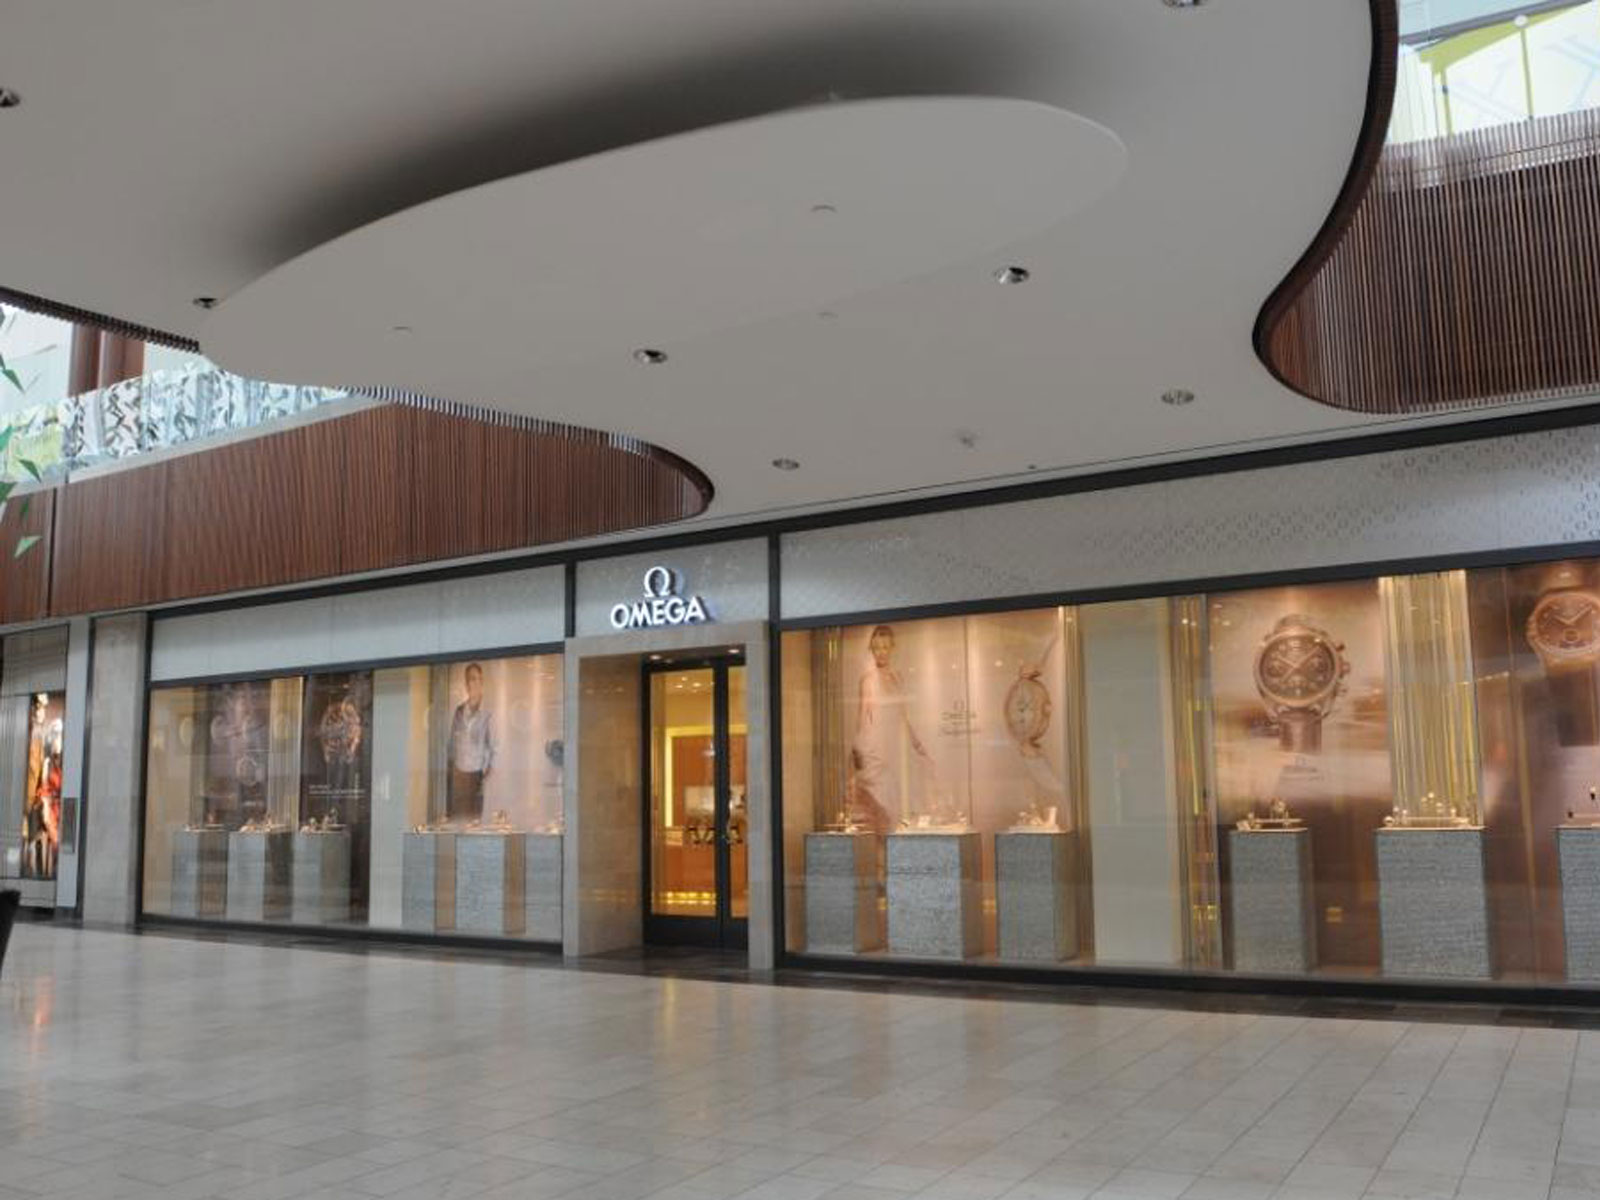 Omega store exterior